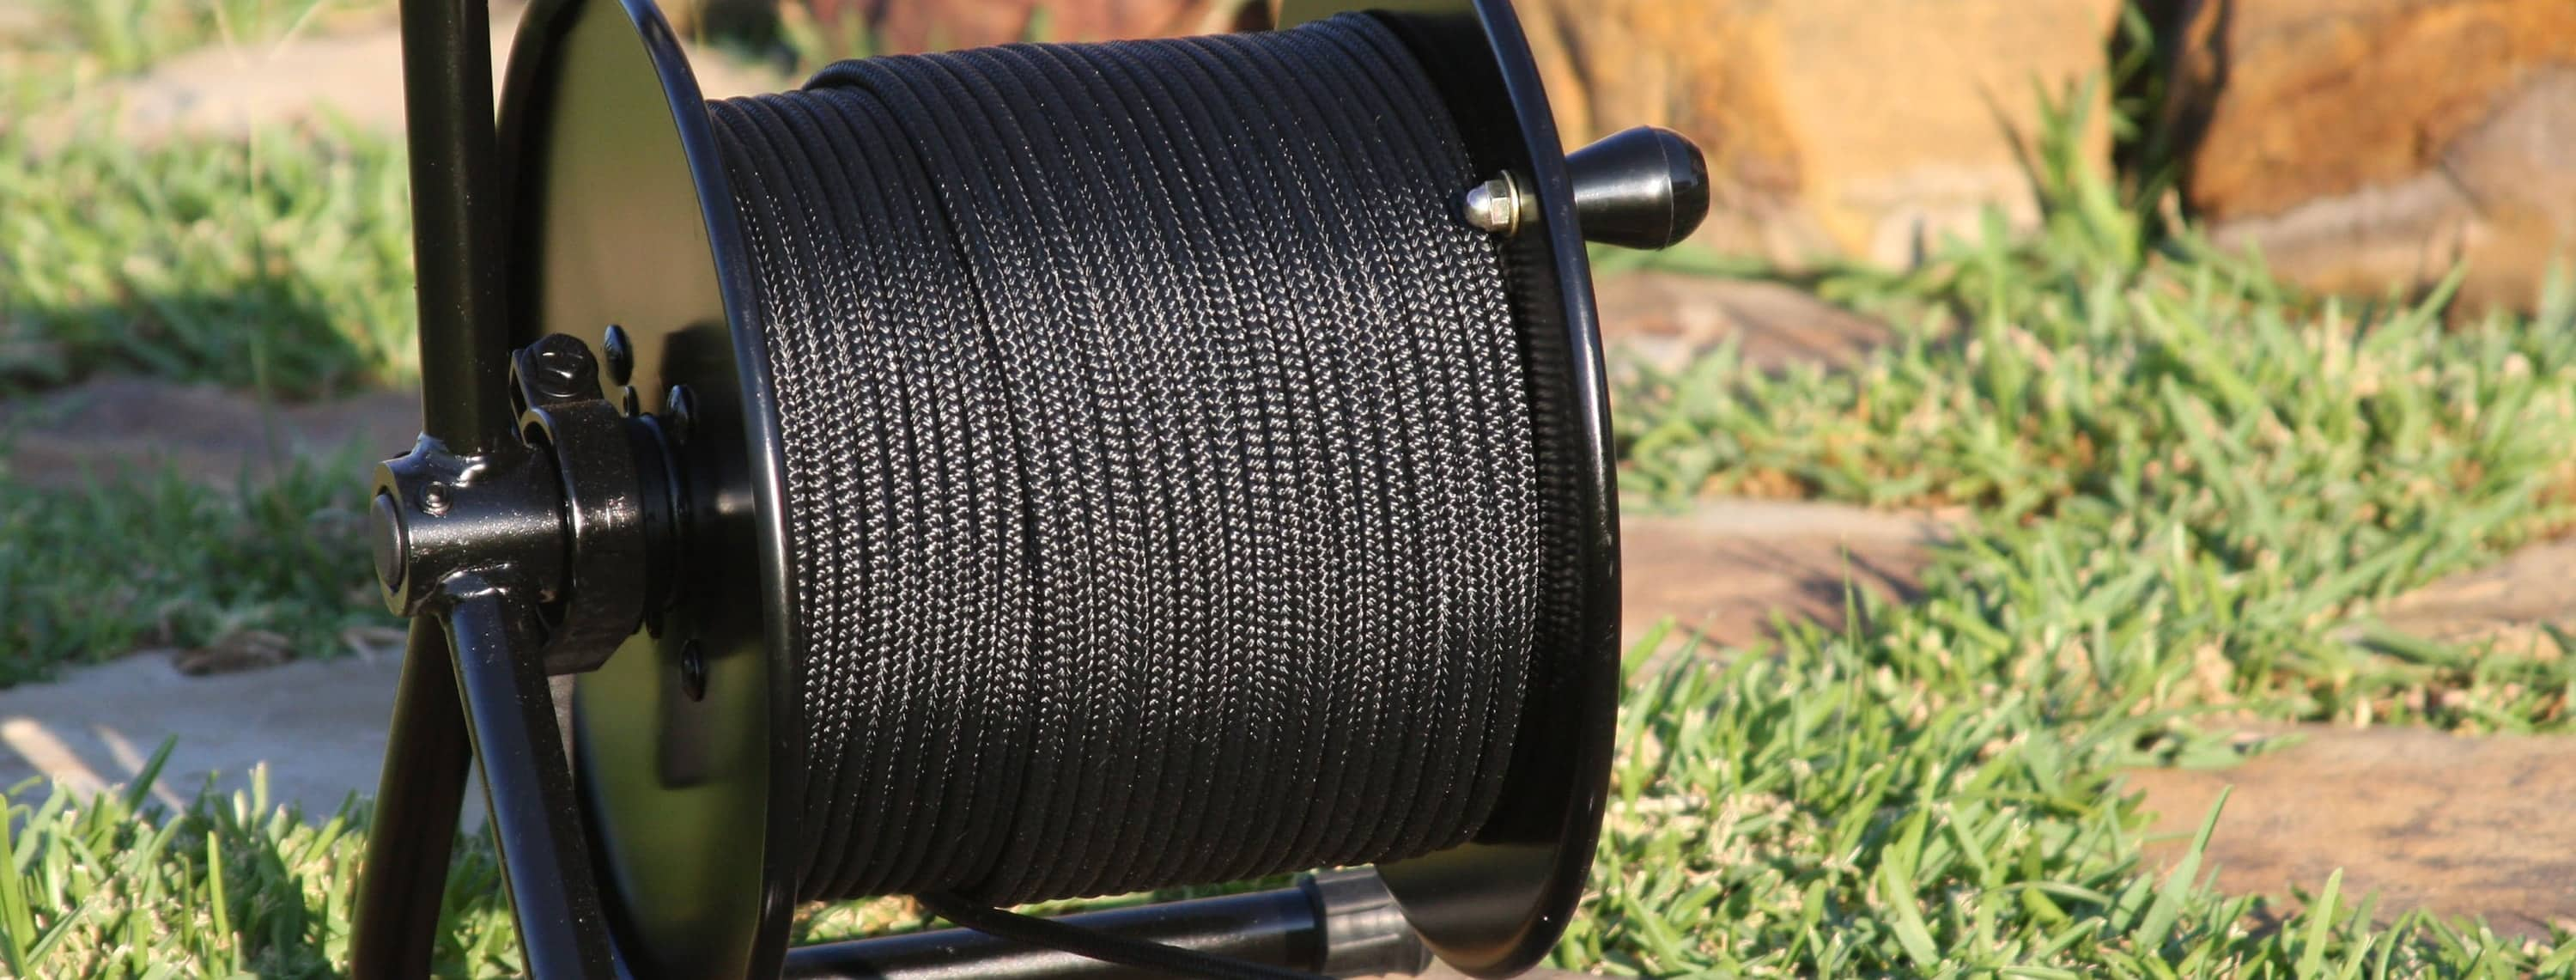 Cable Storage | Hannay Reels Official Site